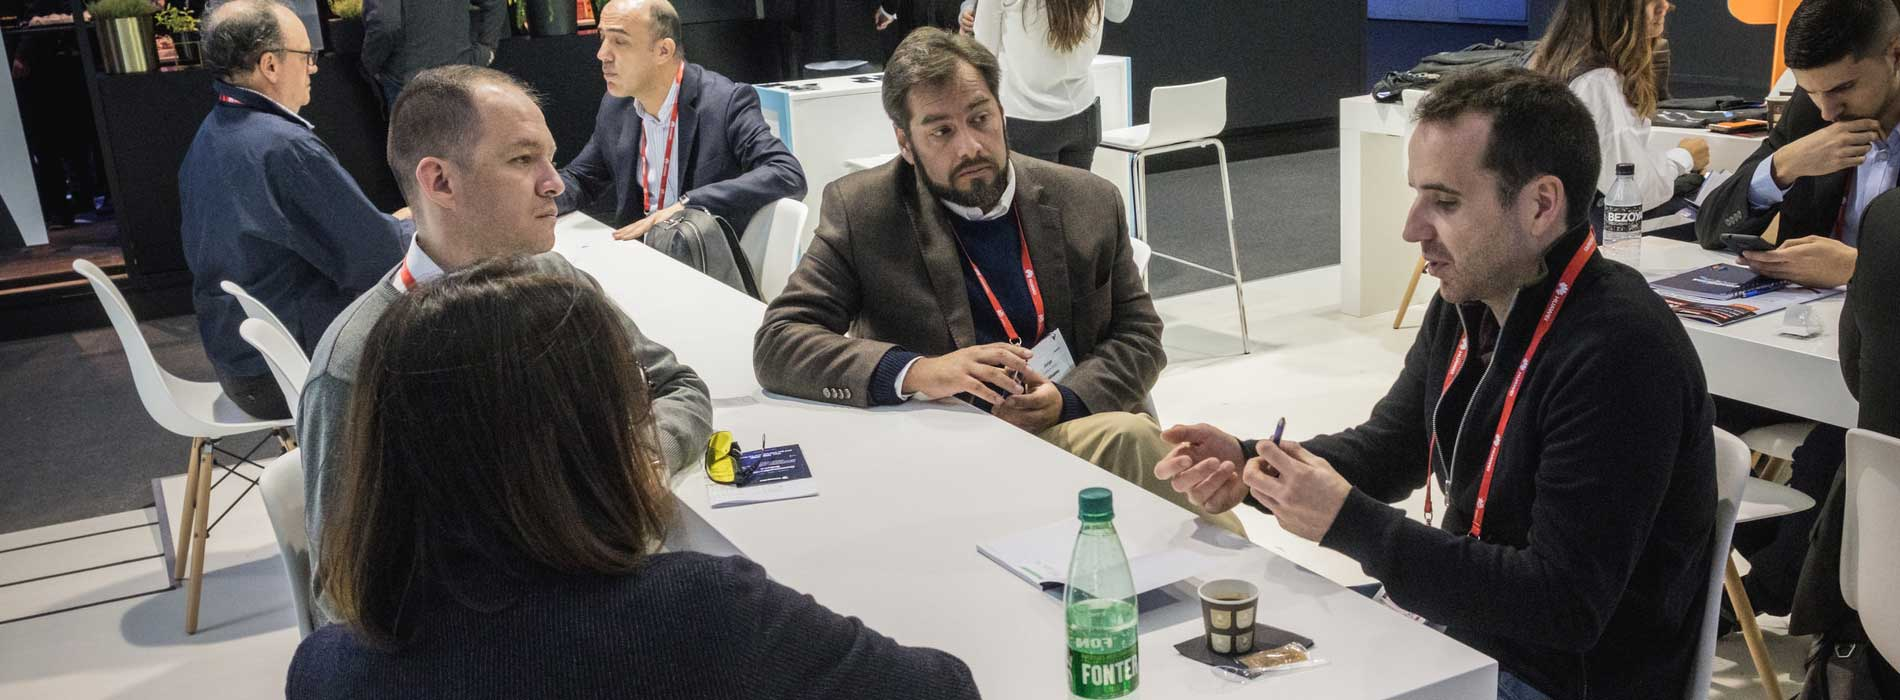 Colombia muestra su potente oferta en el Mobile World Congress 2019